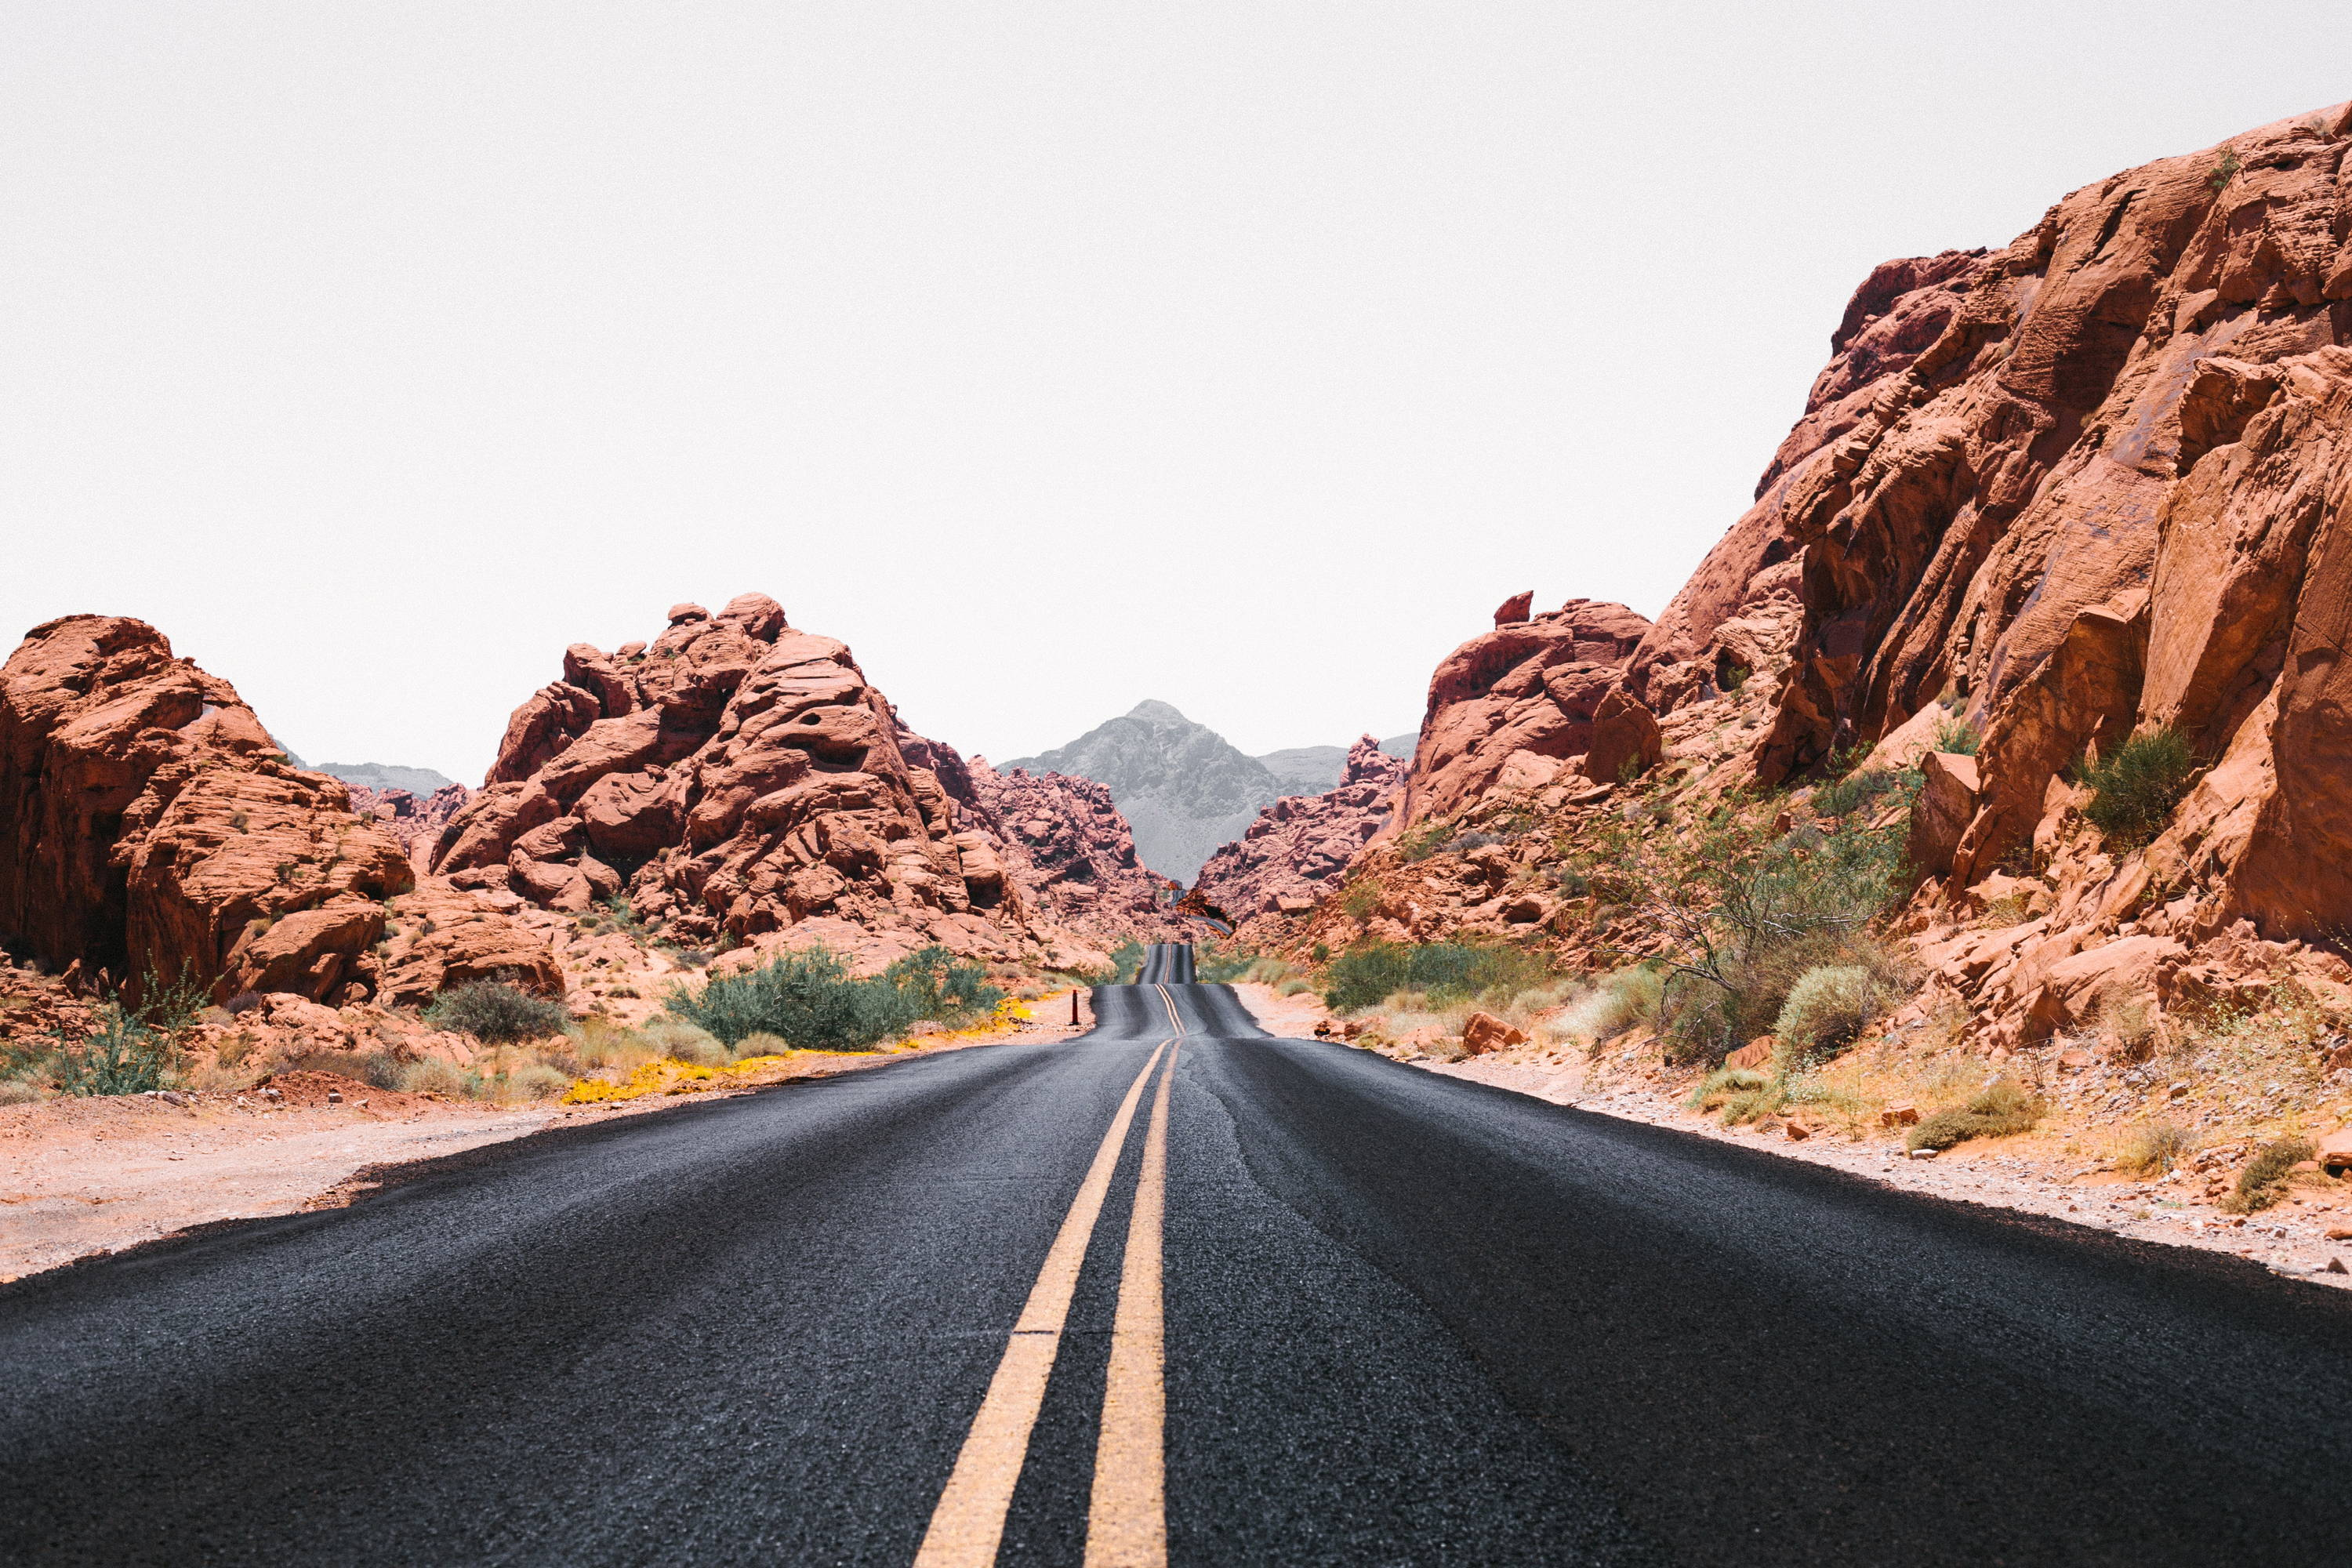 Valley of Fire State Park: The Complete Guide. Black road with double-yellow line flows through red rock formations with green brush on either side.